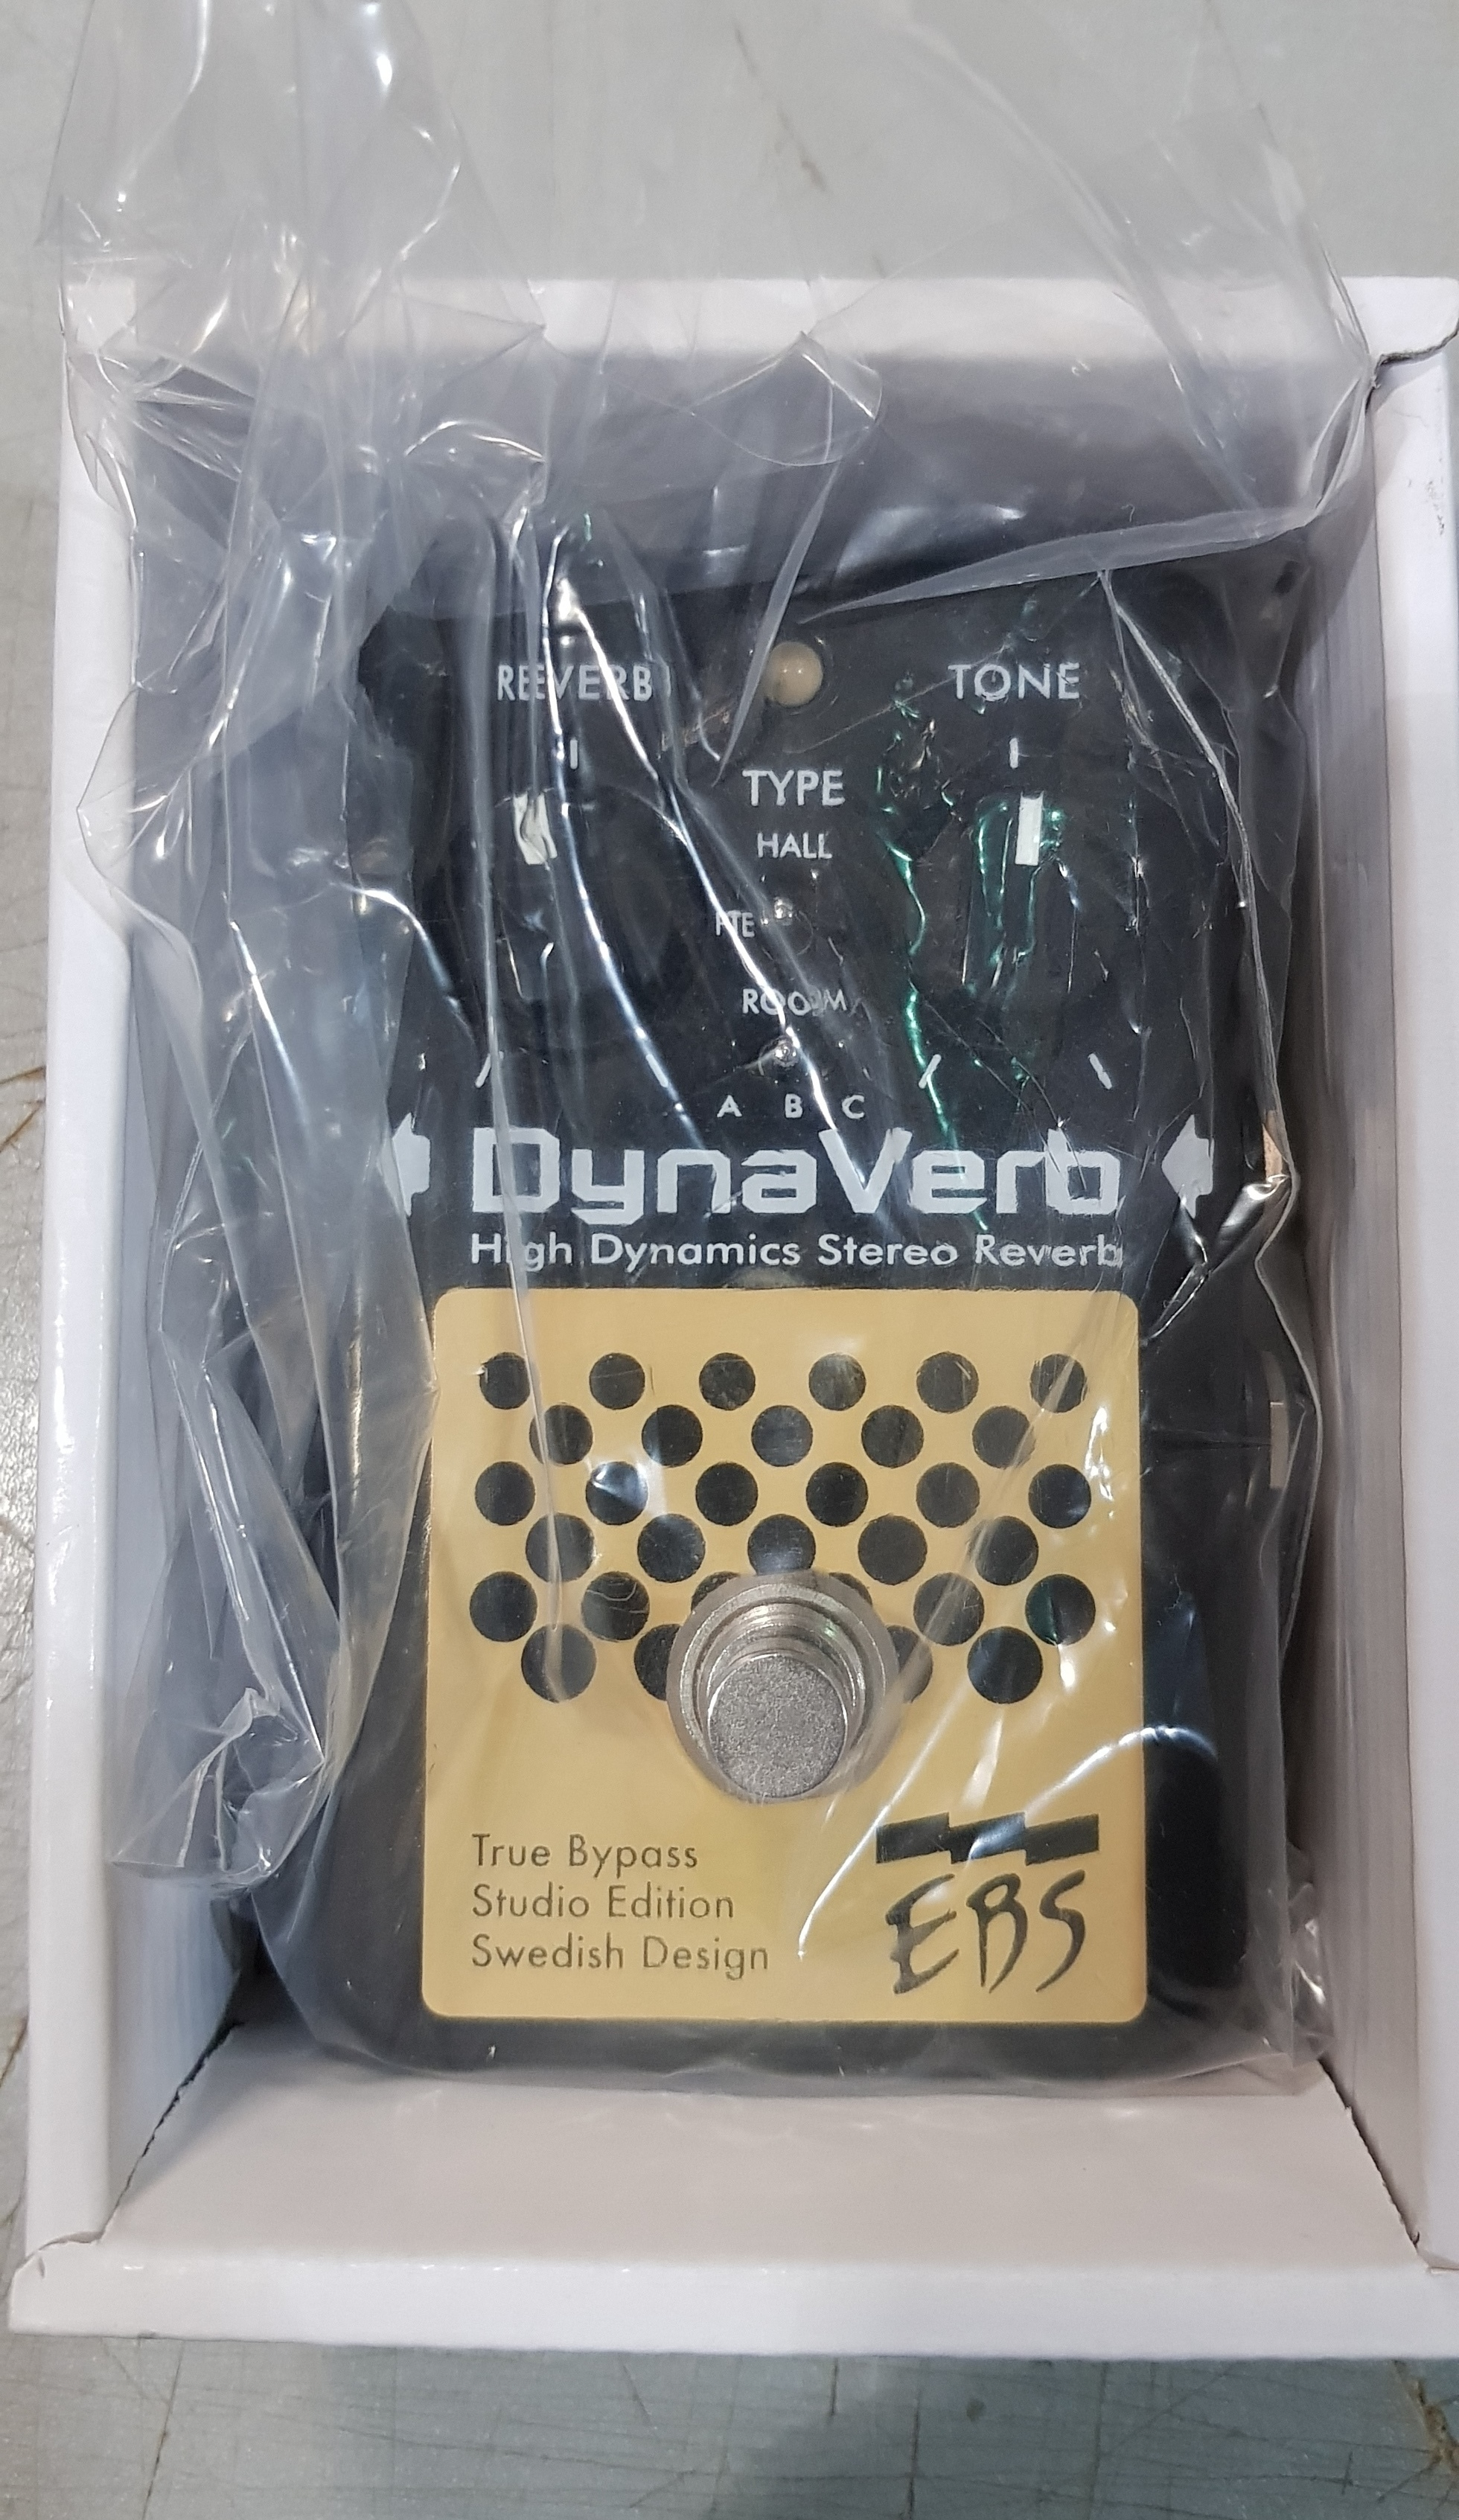 EBS DYNAVERB BLACK LABEL STUDIO EDITION Stereo Reverb Effect Pedal